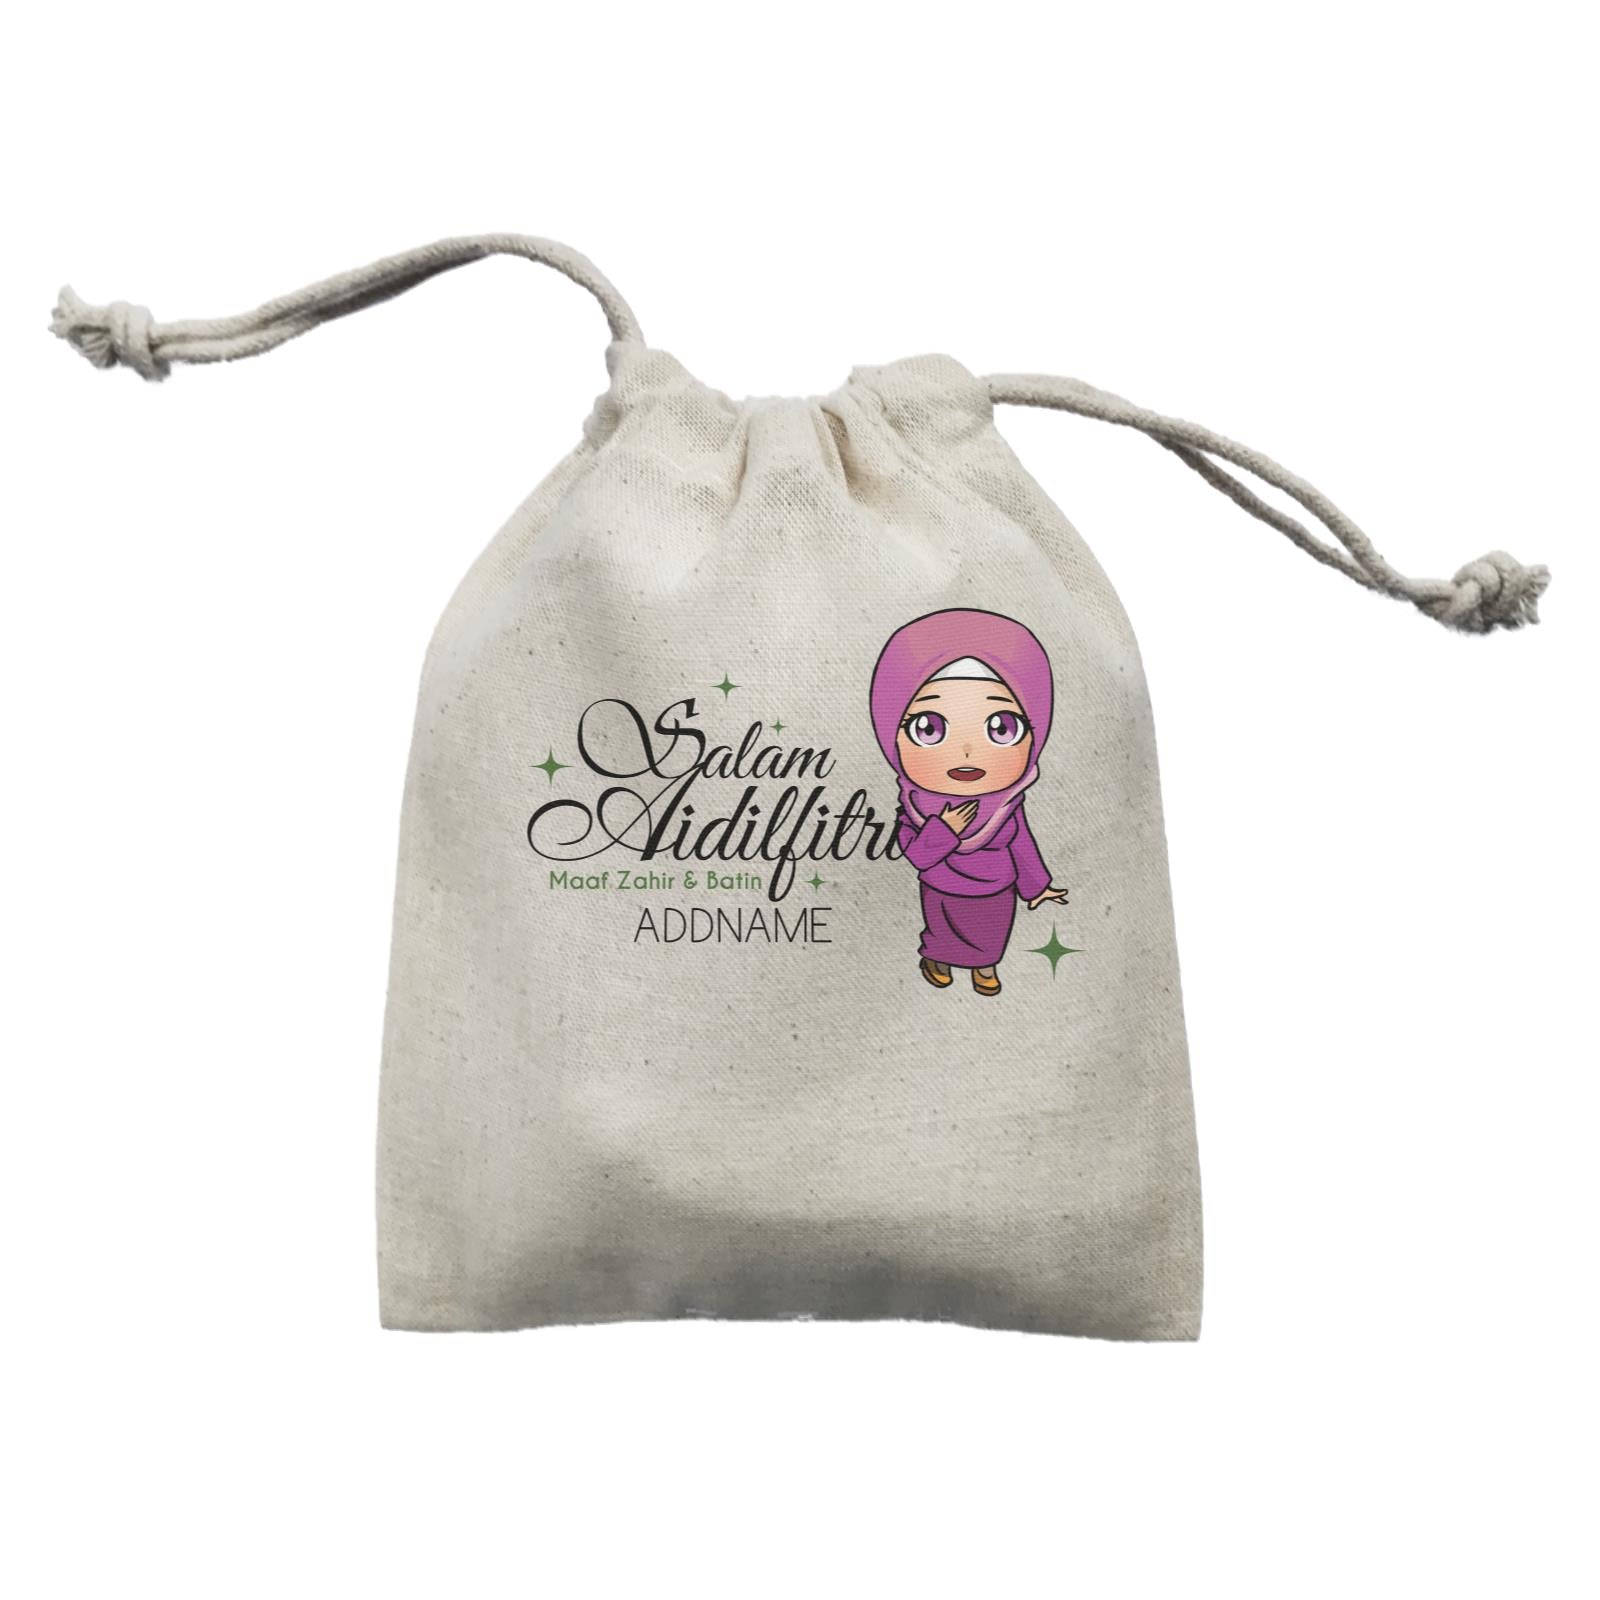 Raya Chibi Wishes Woman Addname Wishes Everyone Salam Aidilfitri Maaf Zahir & Batin Mini Accessories Mini Pouch